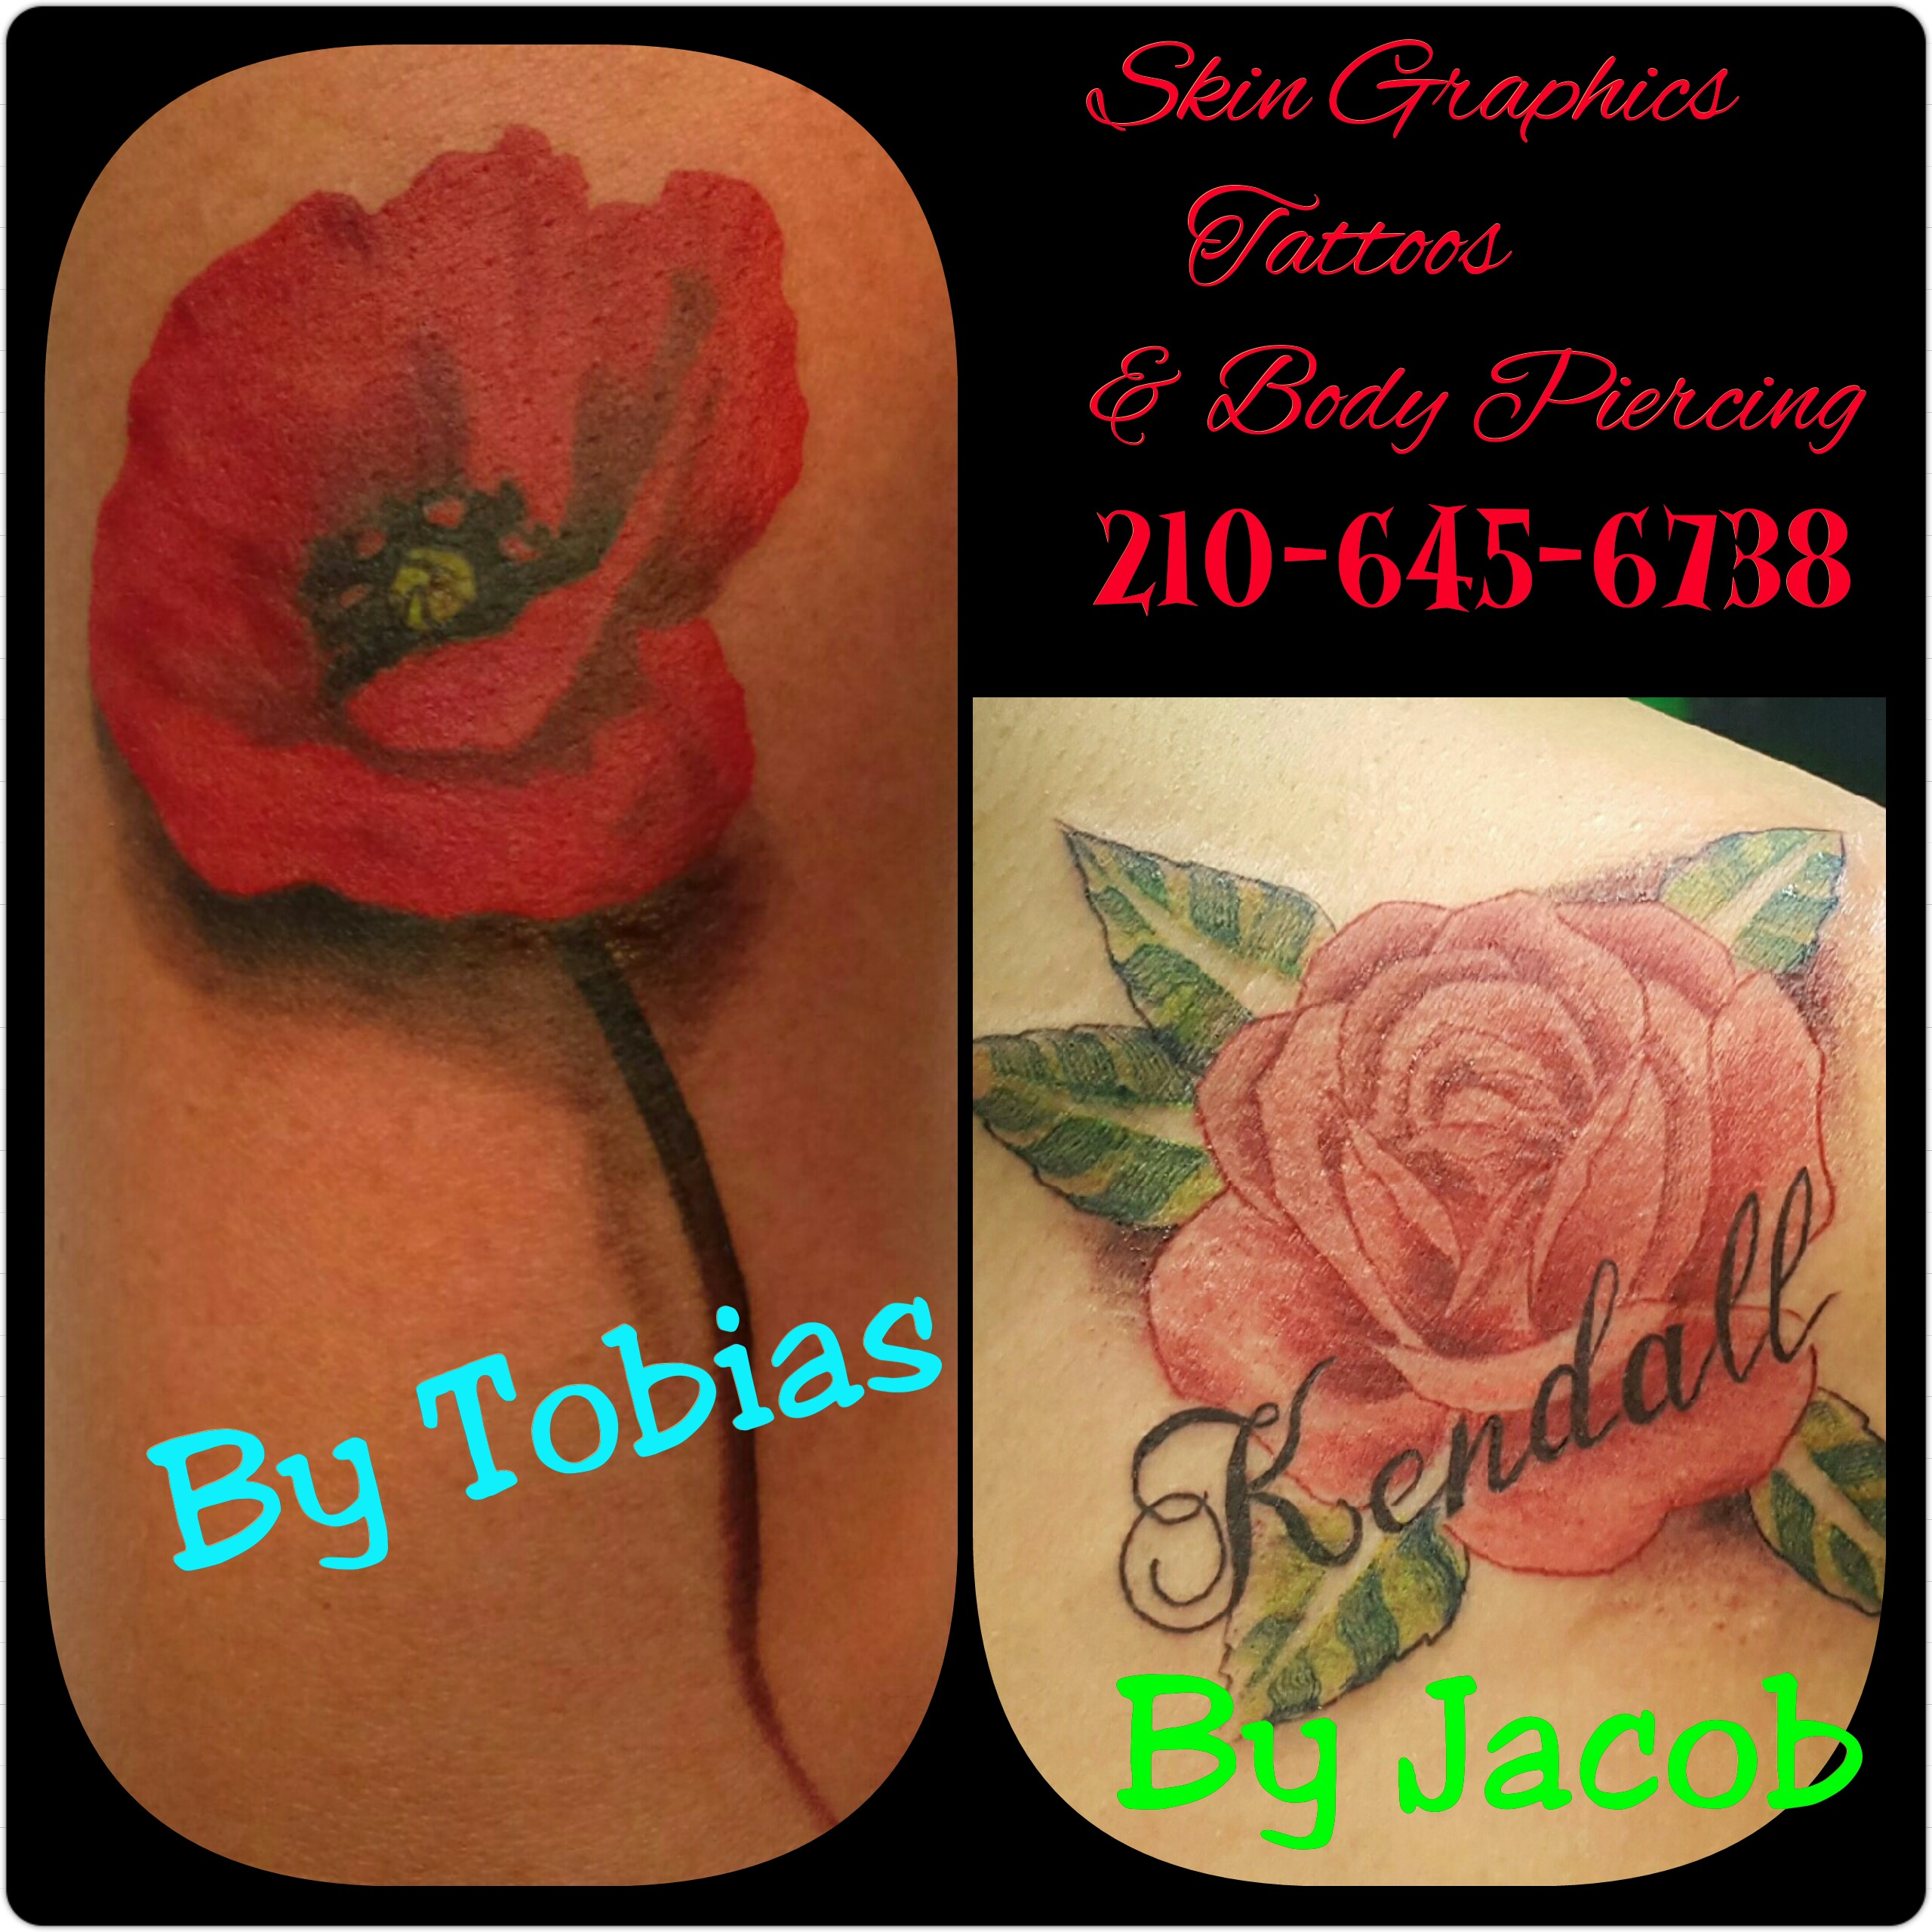 tattoos or body piercing today vs